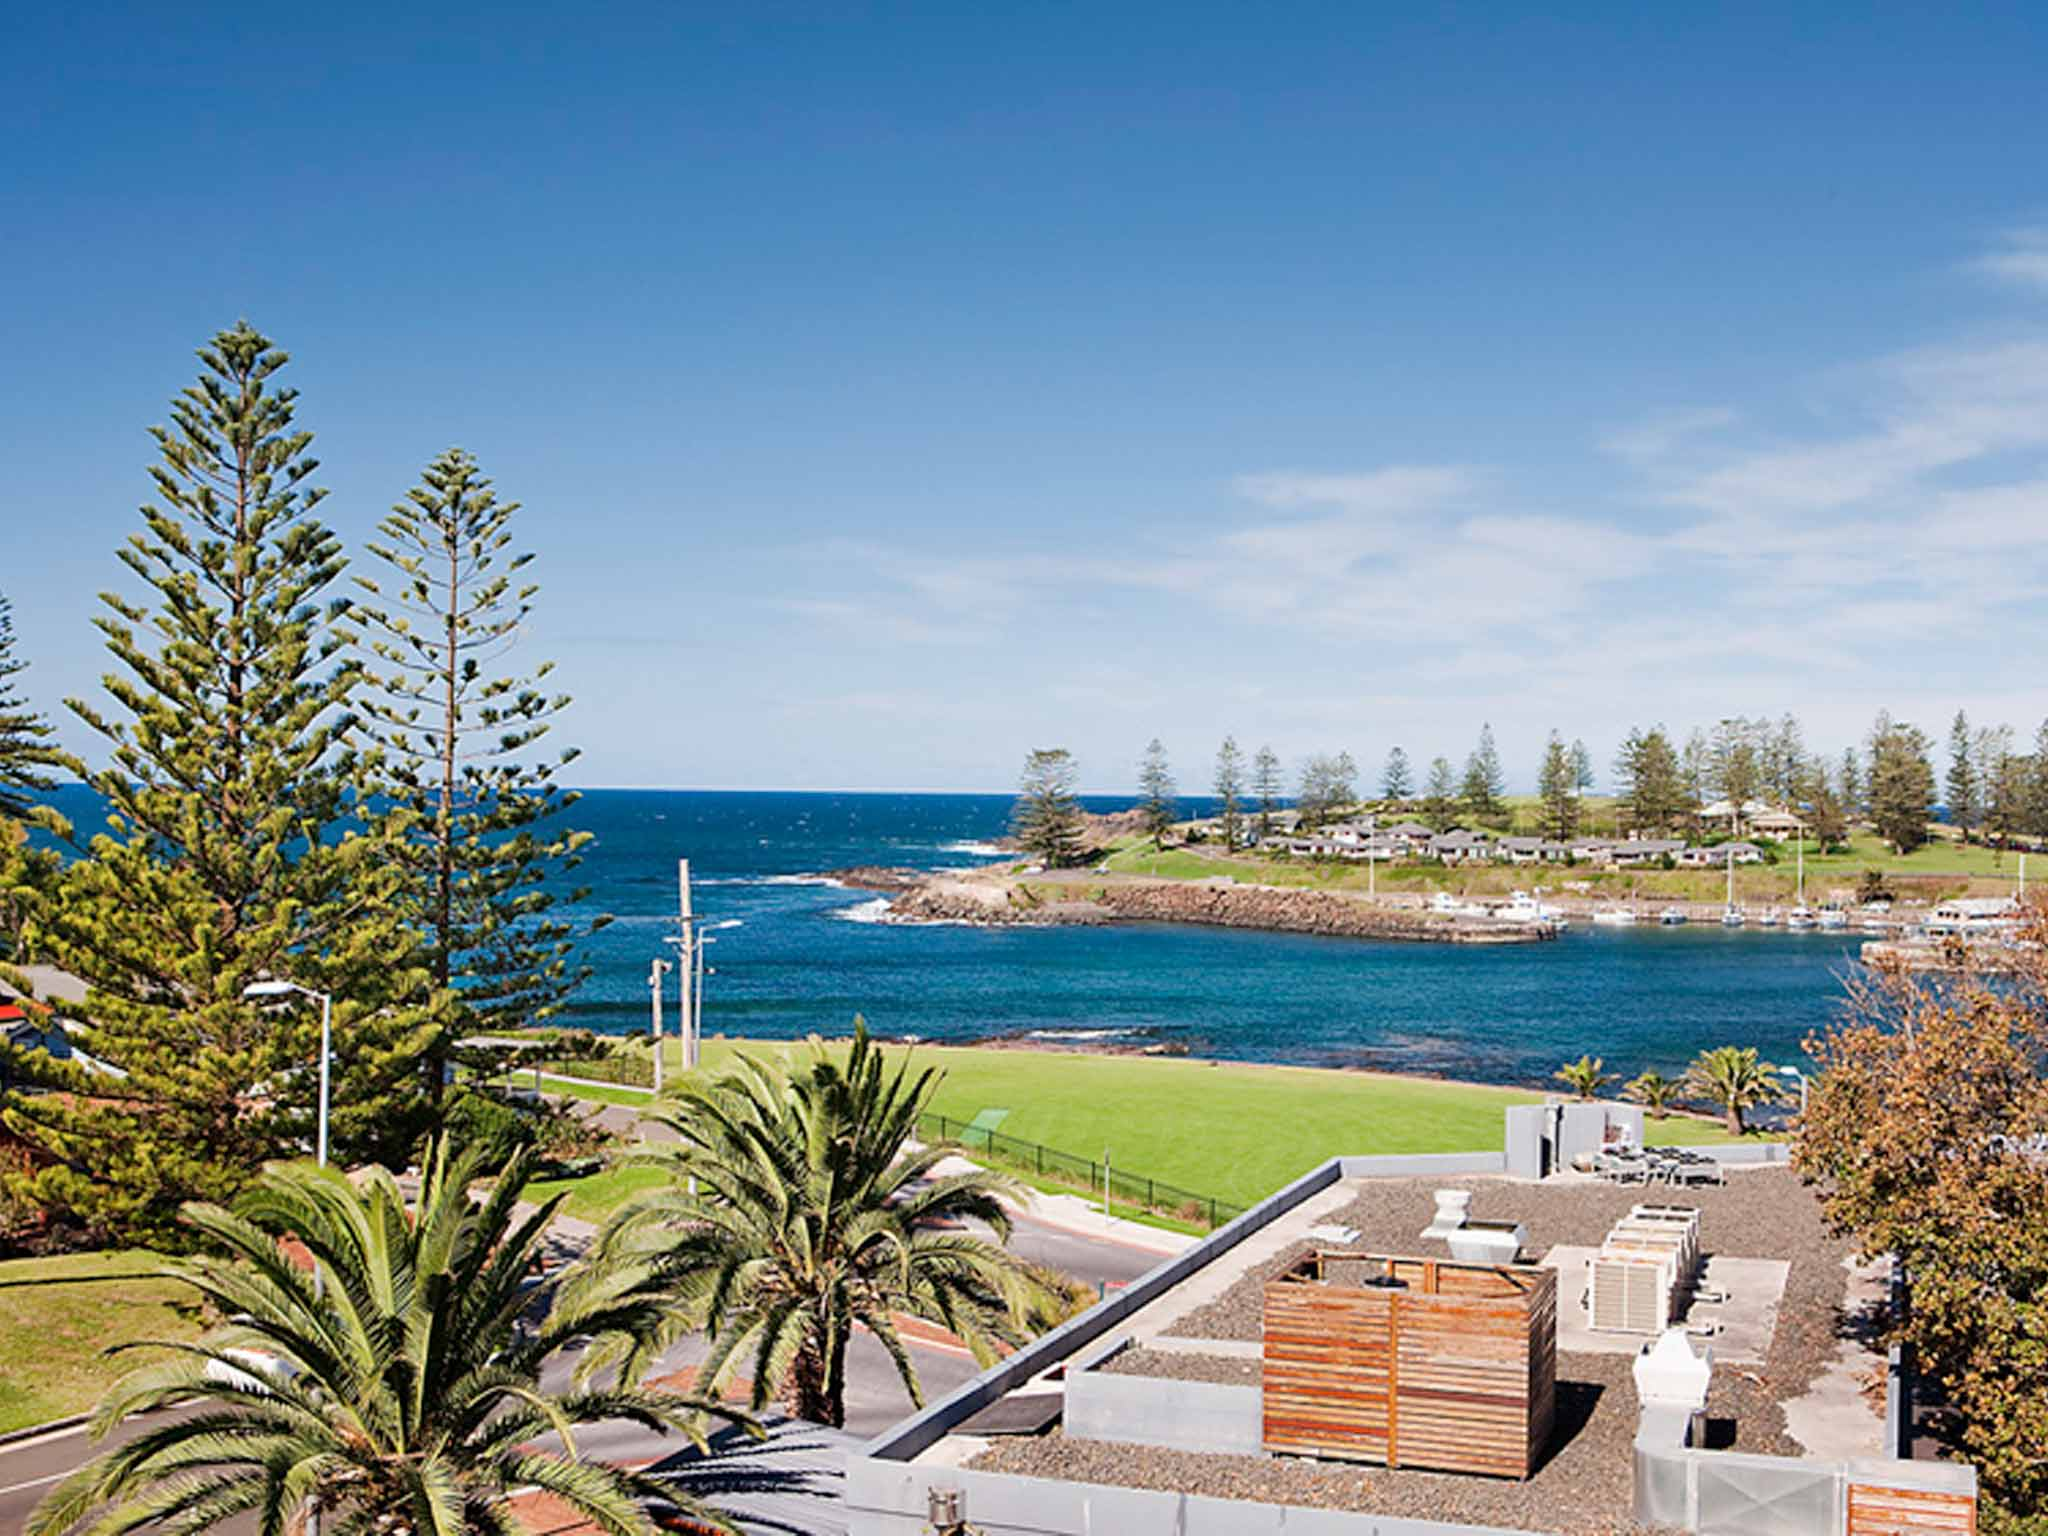 1004 Hotel The Sebel Harbourside Kiama Accorhotels